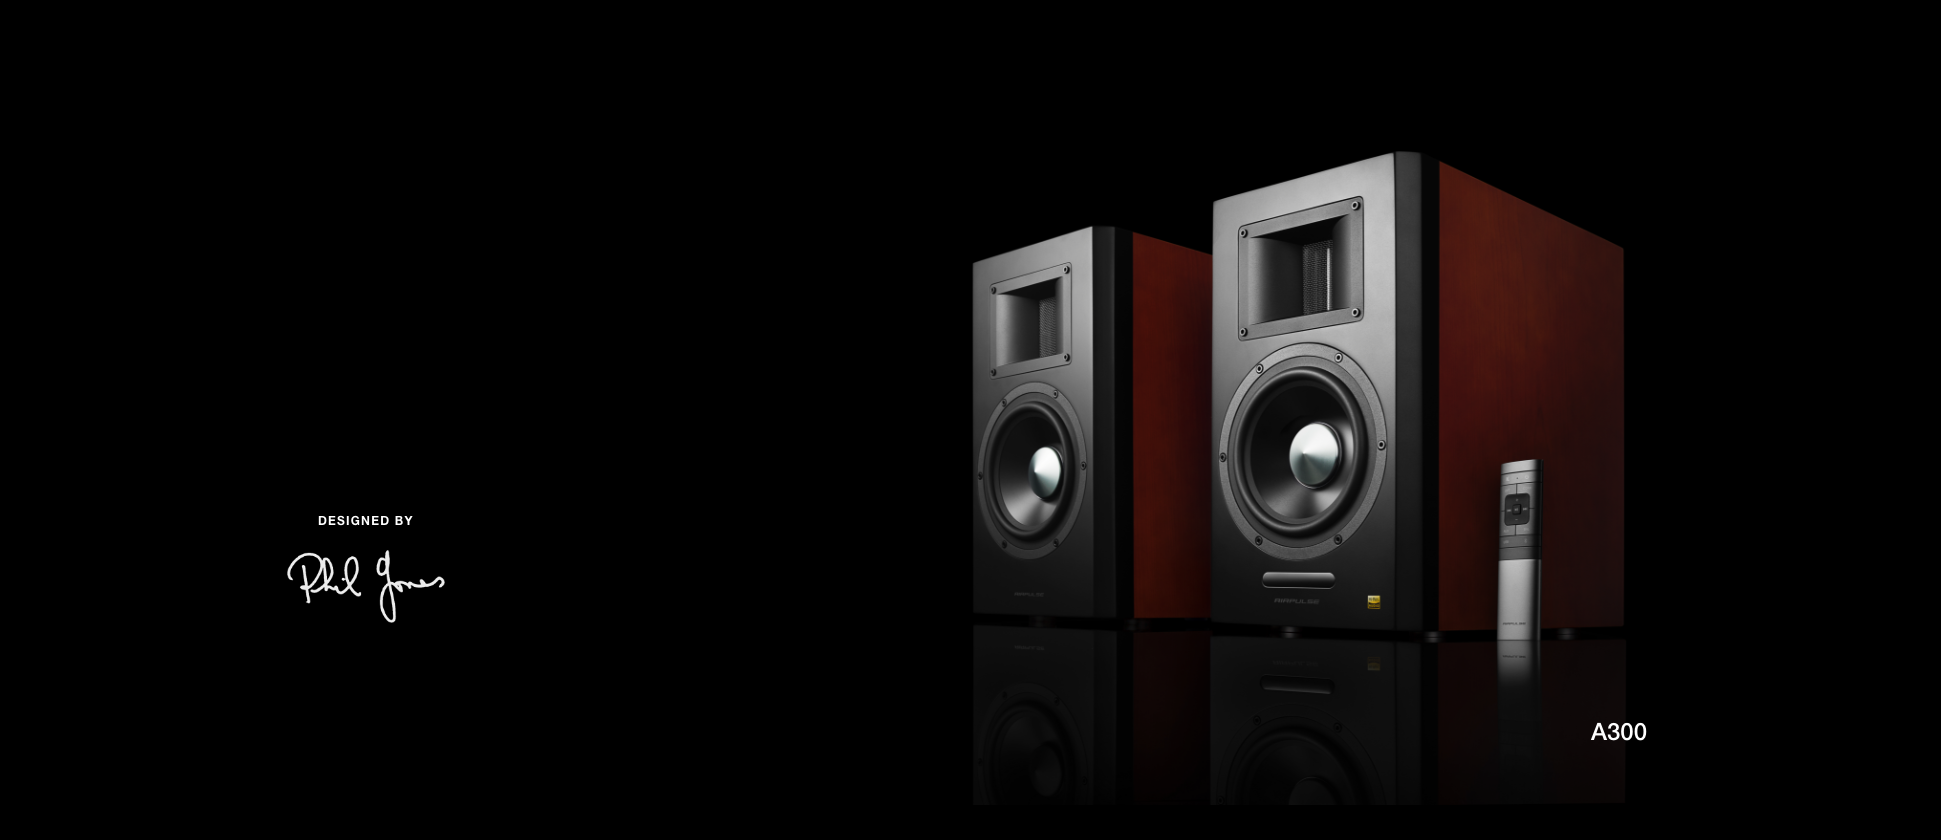 Airpulse Audio Airpulse speakers are designed using the most advanced state of the art R&D and testing equipment led by the internationally renowned audio designer Phil Jones.